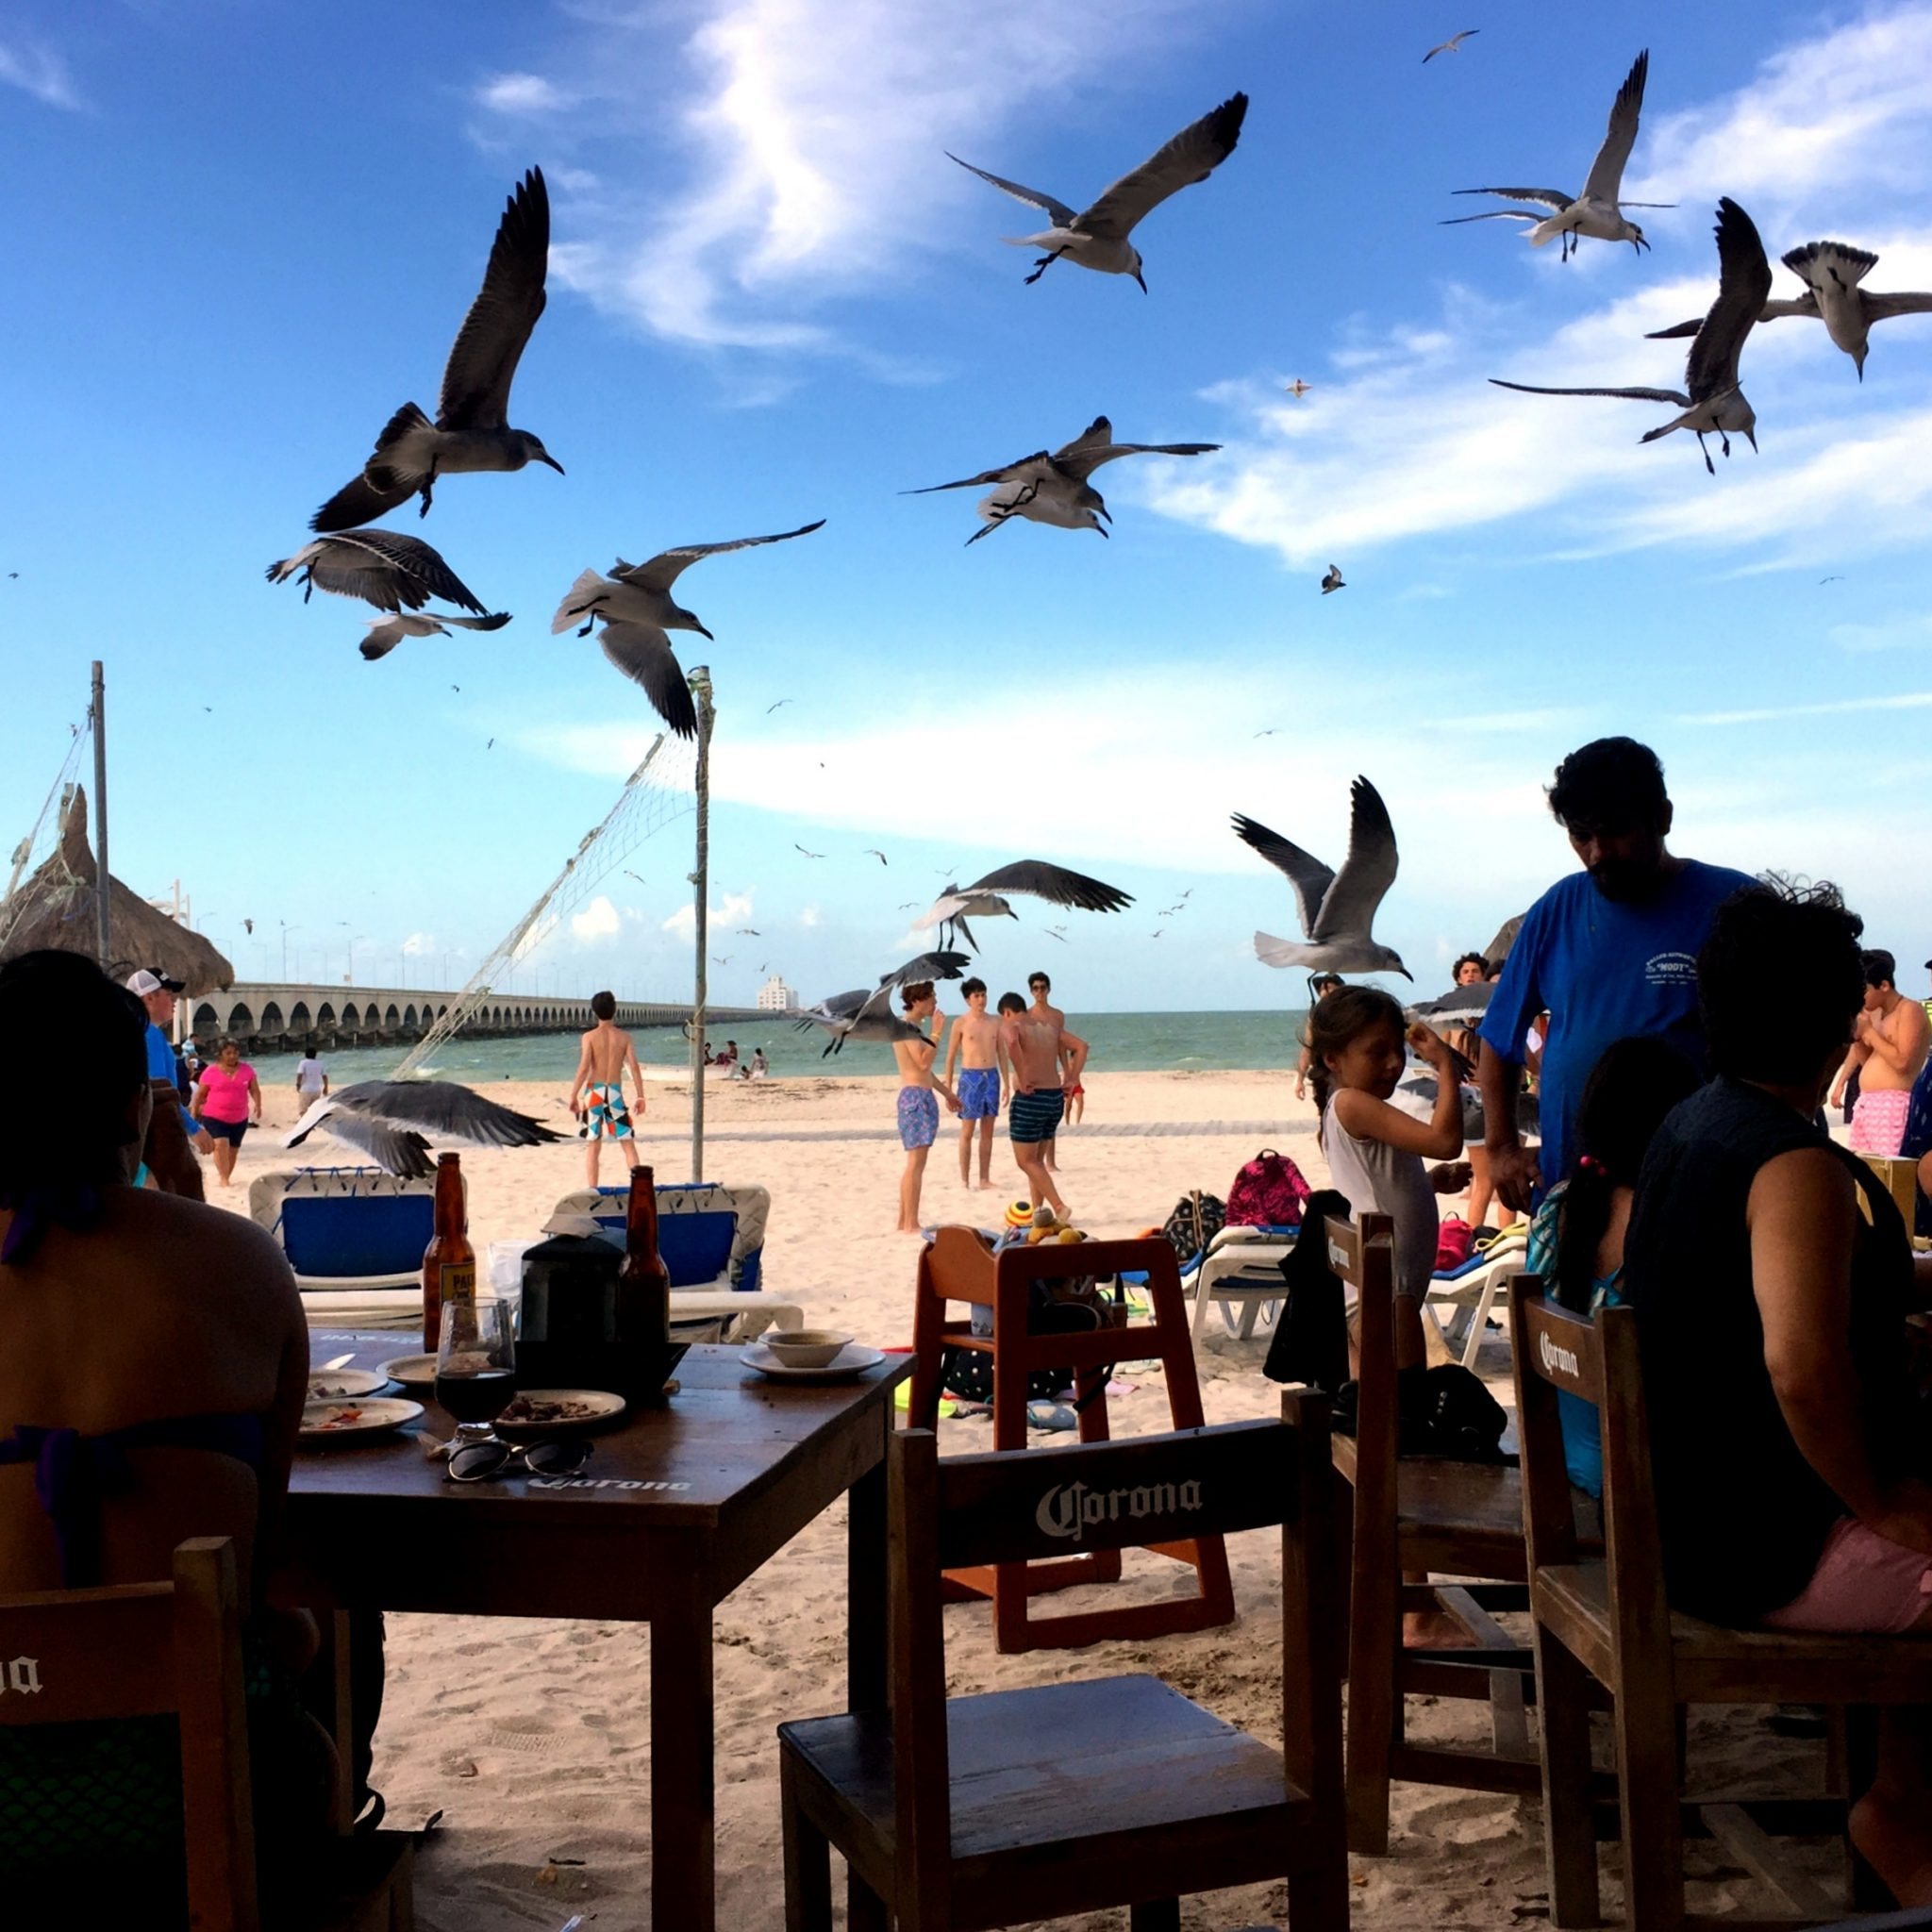 Grab a cerveza and a fresh ceviche from one of many bars by Progreso pier and soak up the vibes.